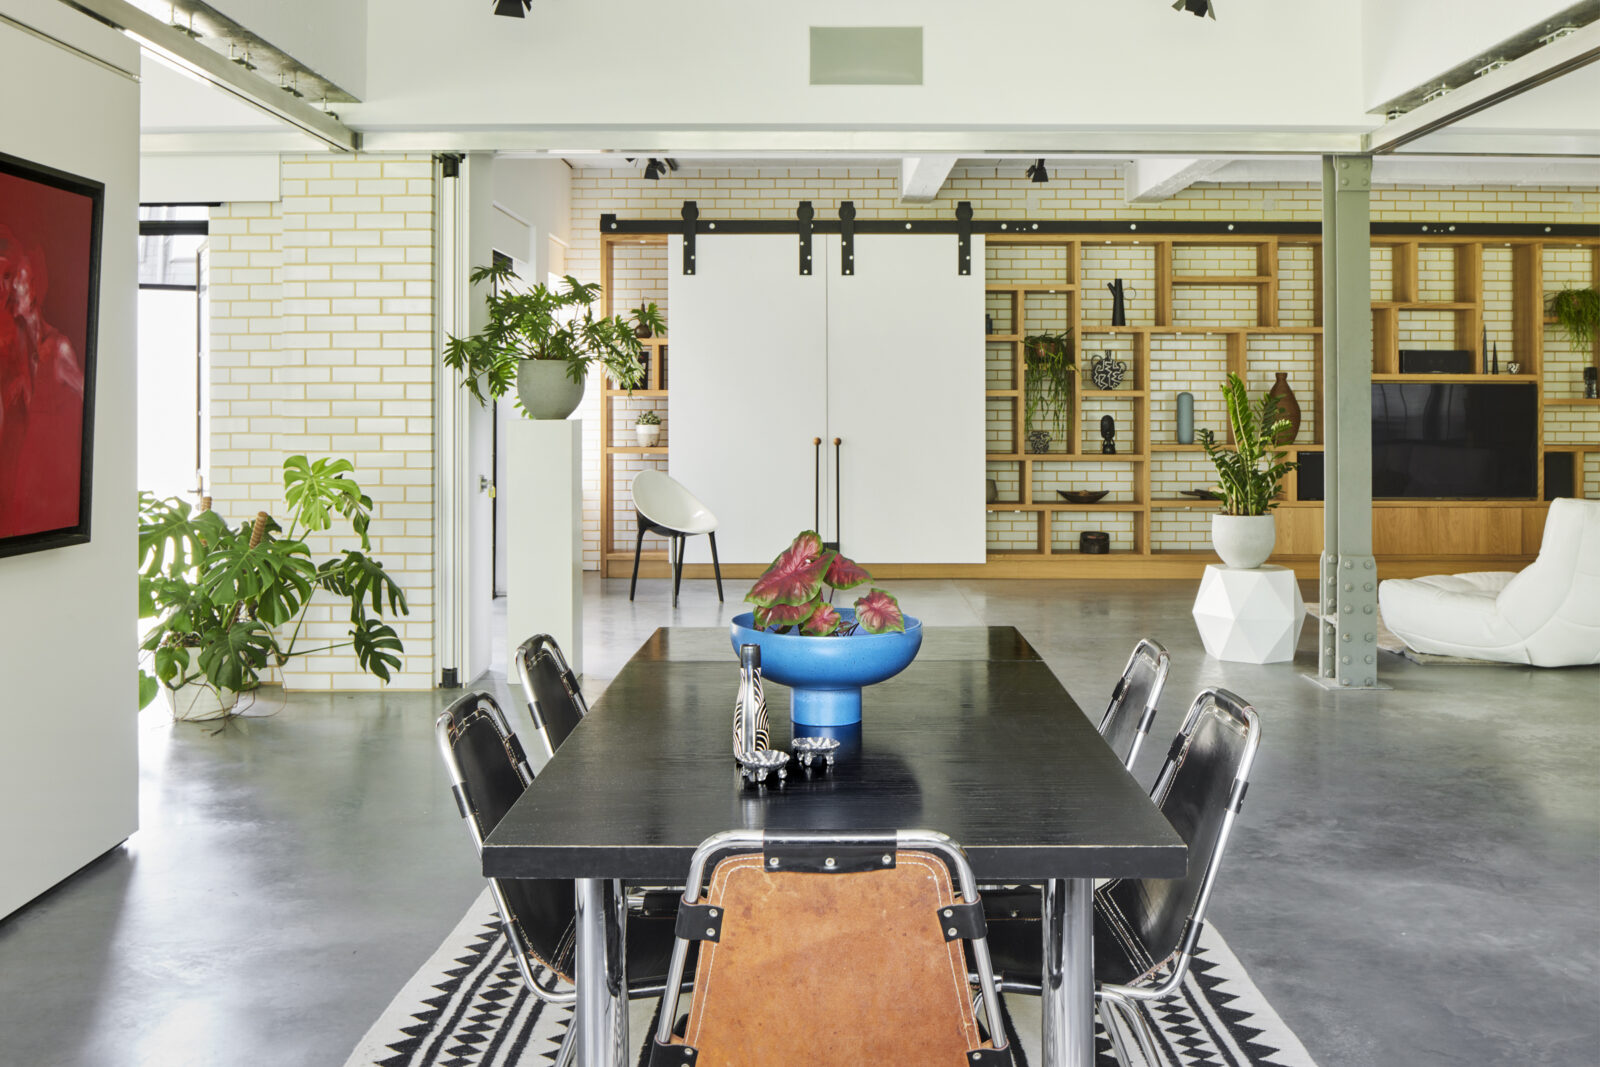 Polished concrete floors run across the apartment which retains an open and adaptable floorplan courtesy of moveable walls